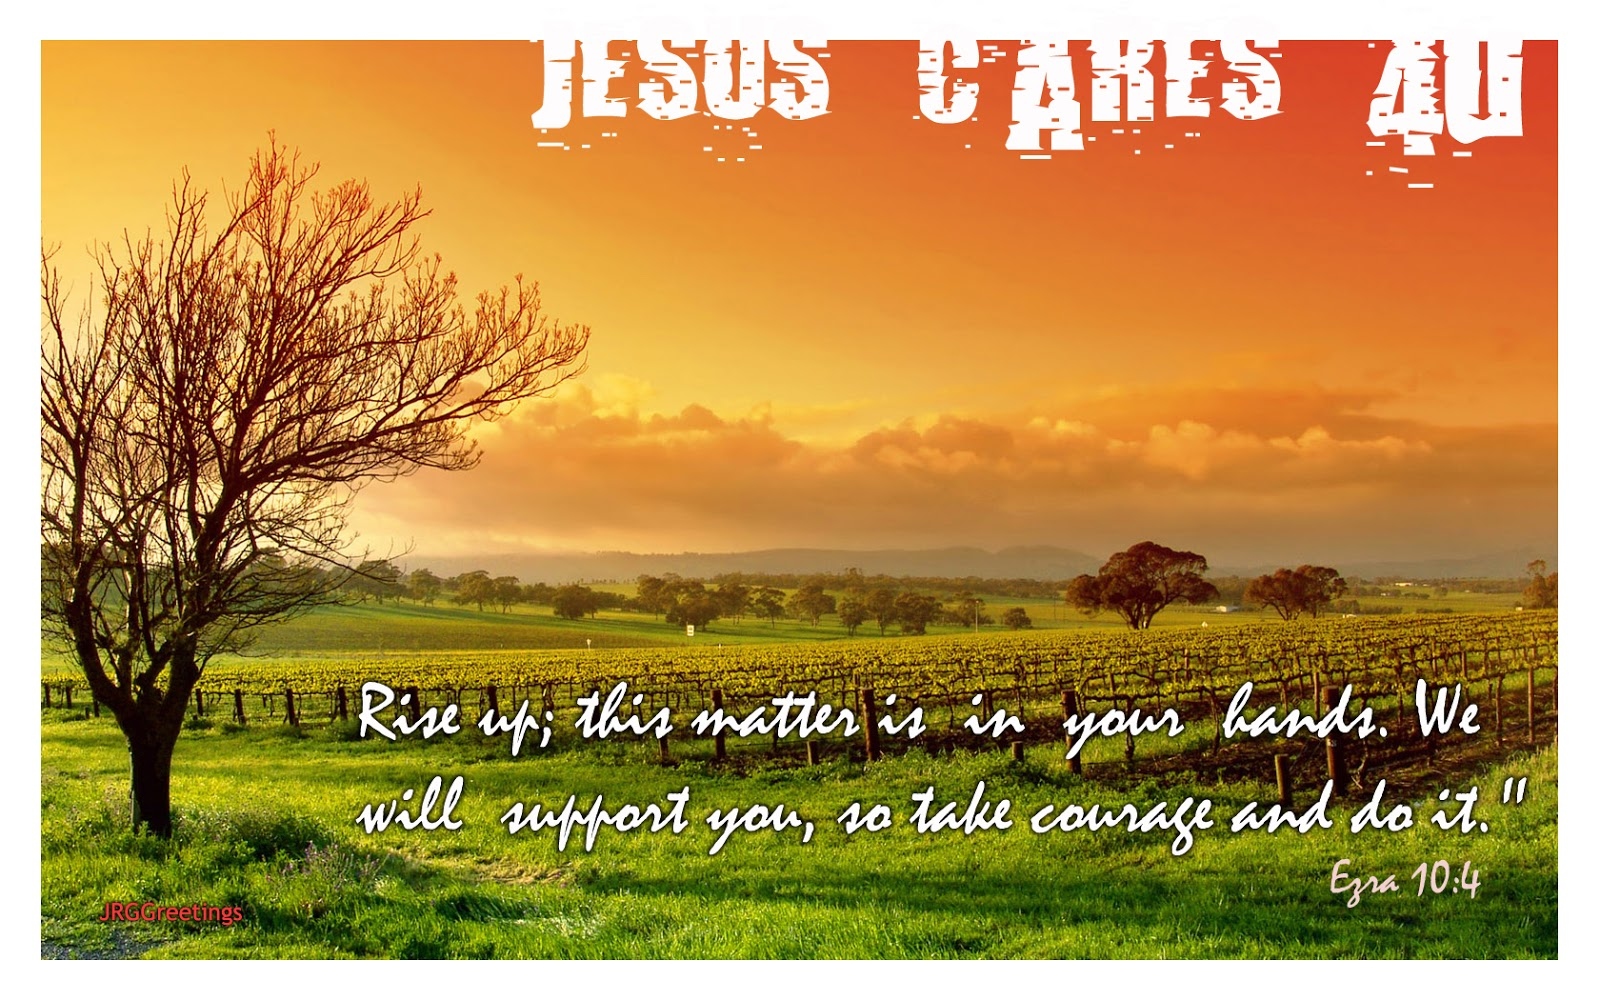 free download jesus wallpapers for mobile